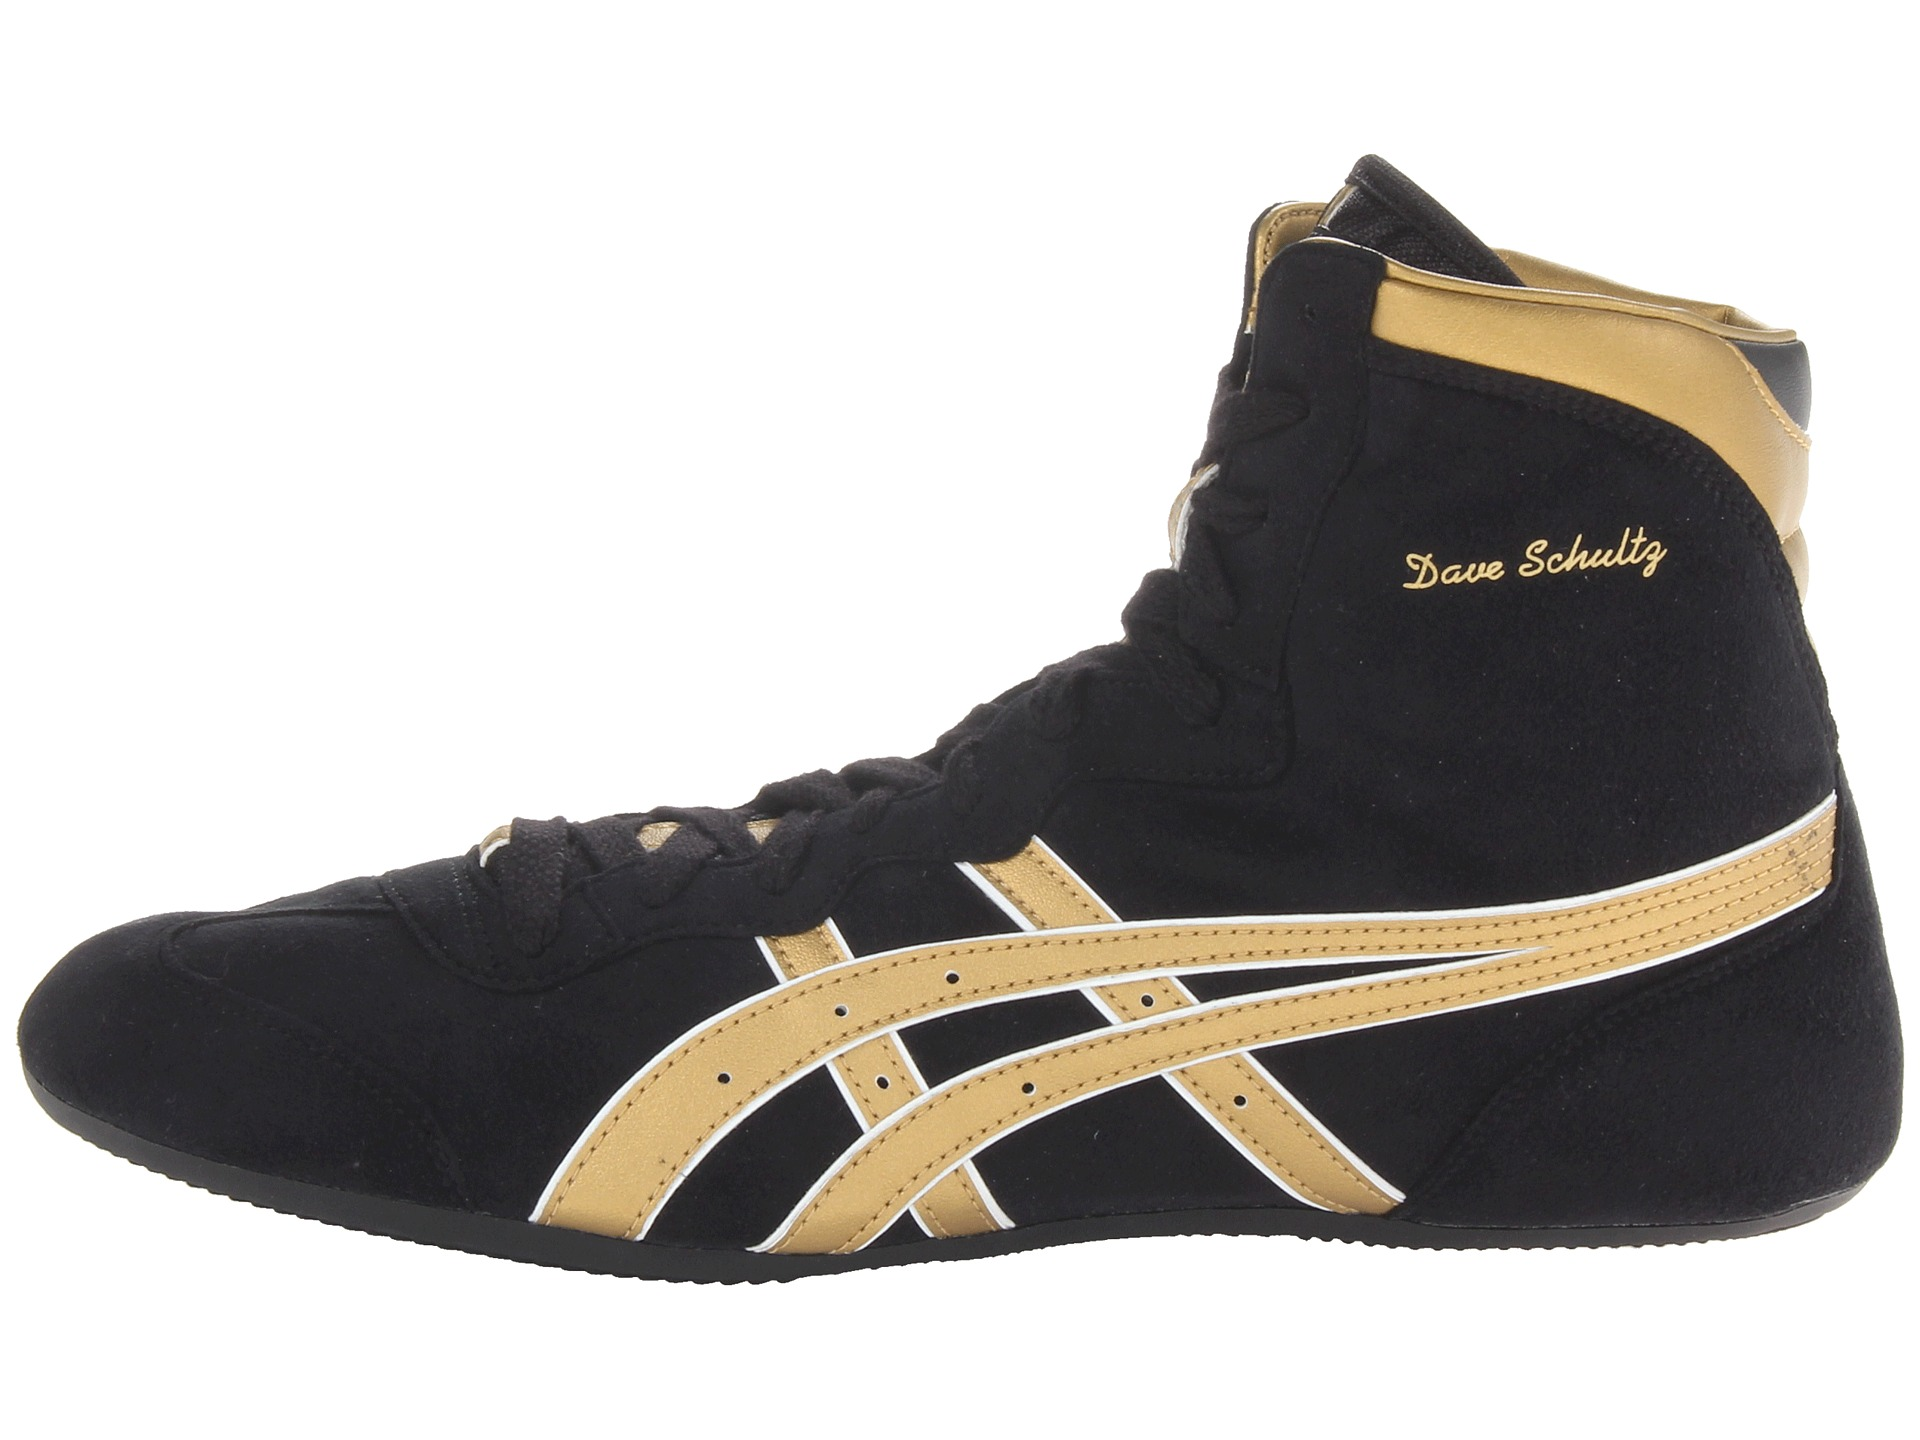 Dave Schultz Wrestling Shoes – images free download